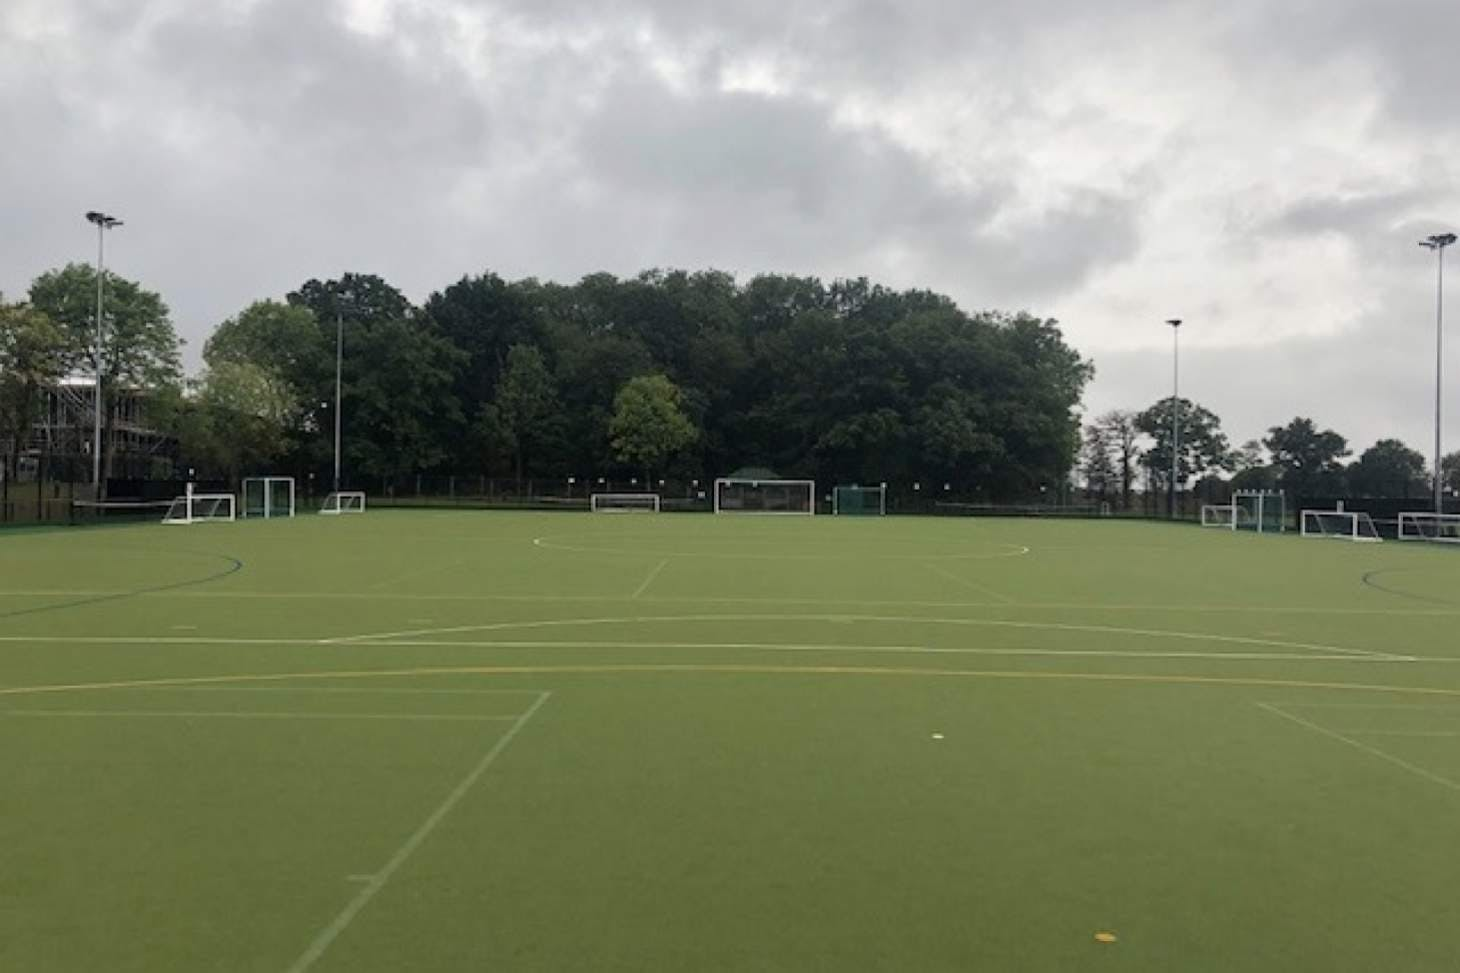 Beaumont School 7 a side | Astroturf football pitch